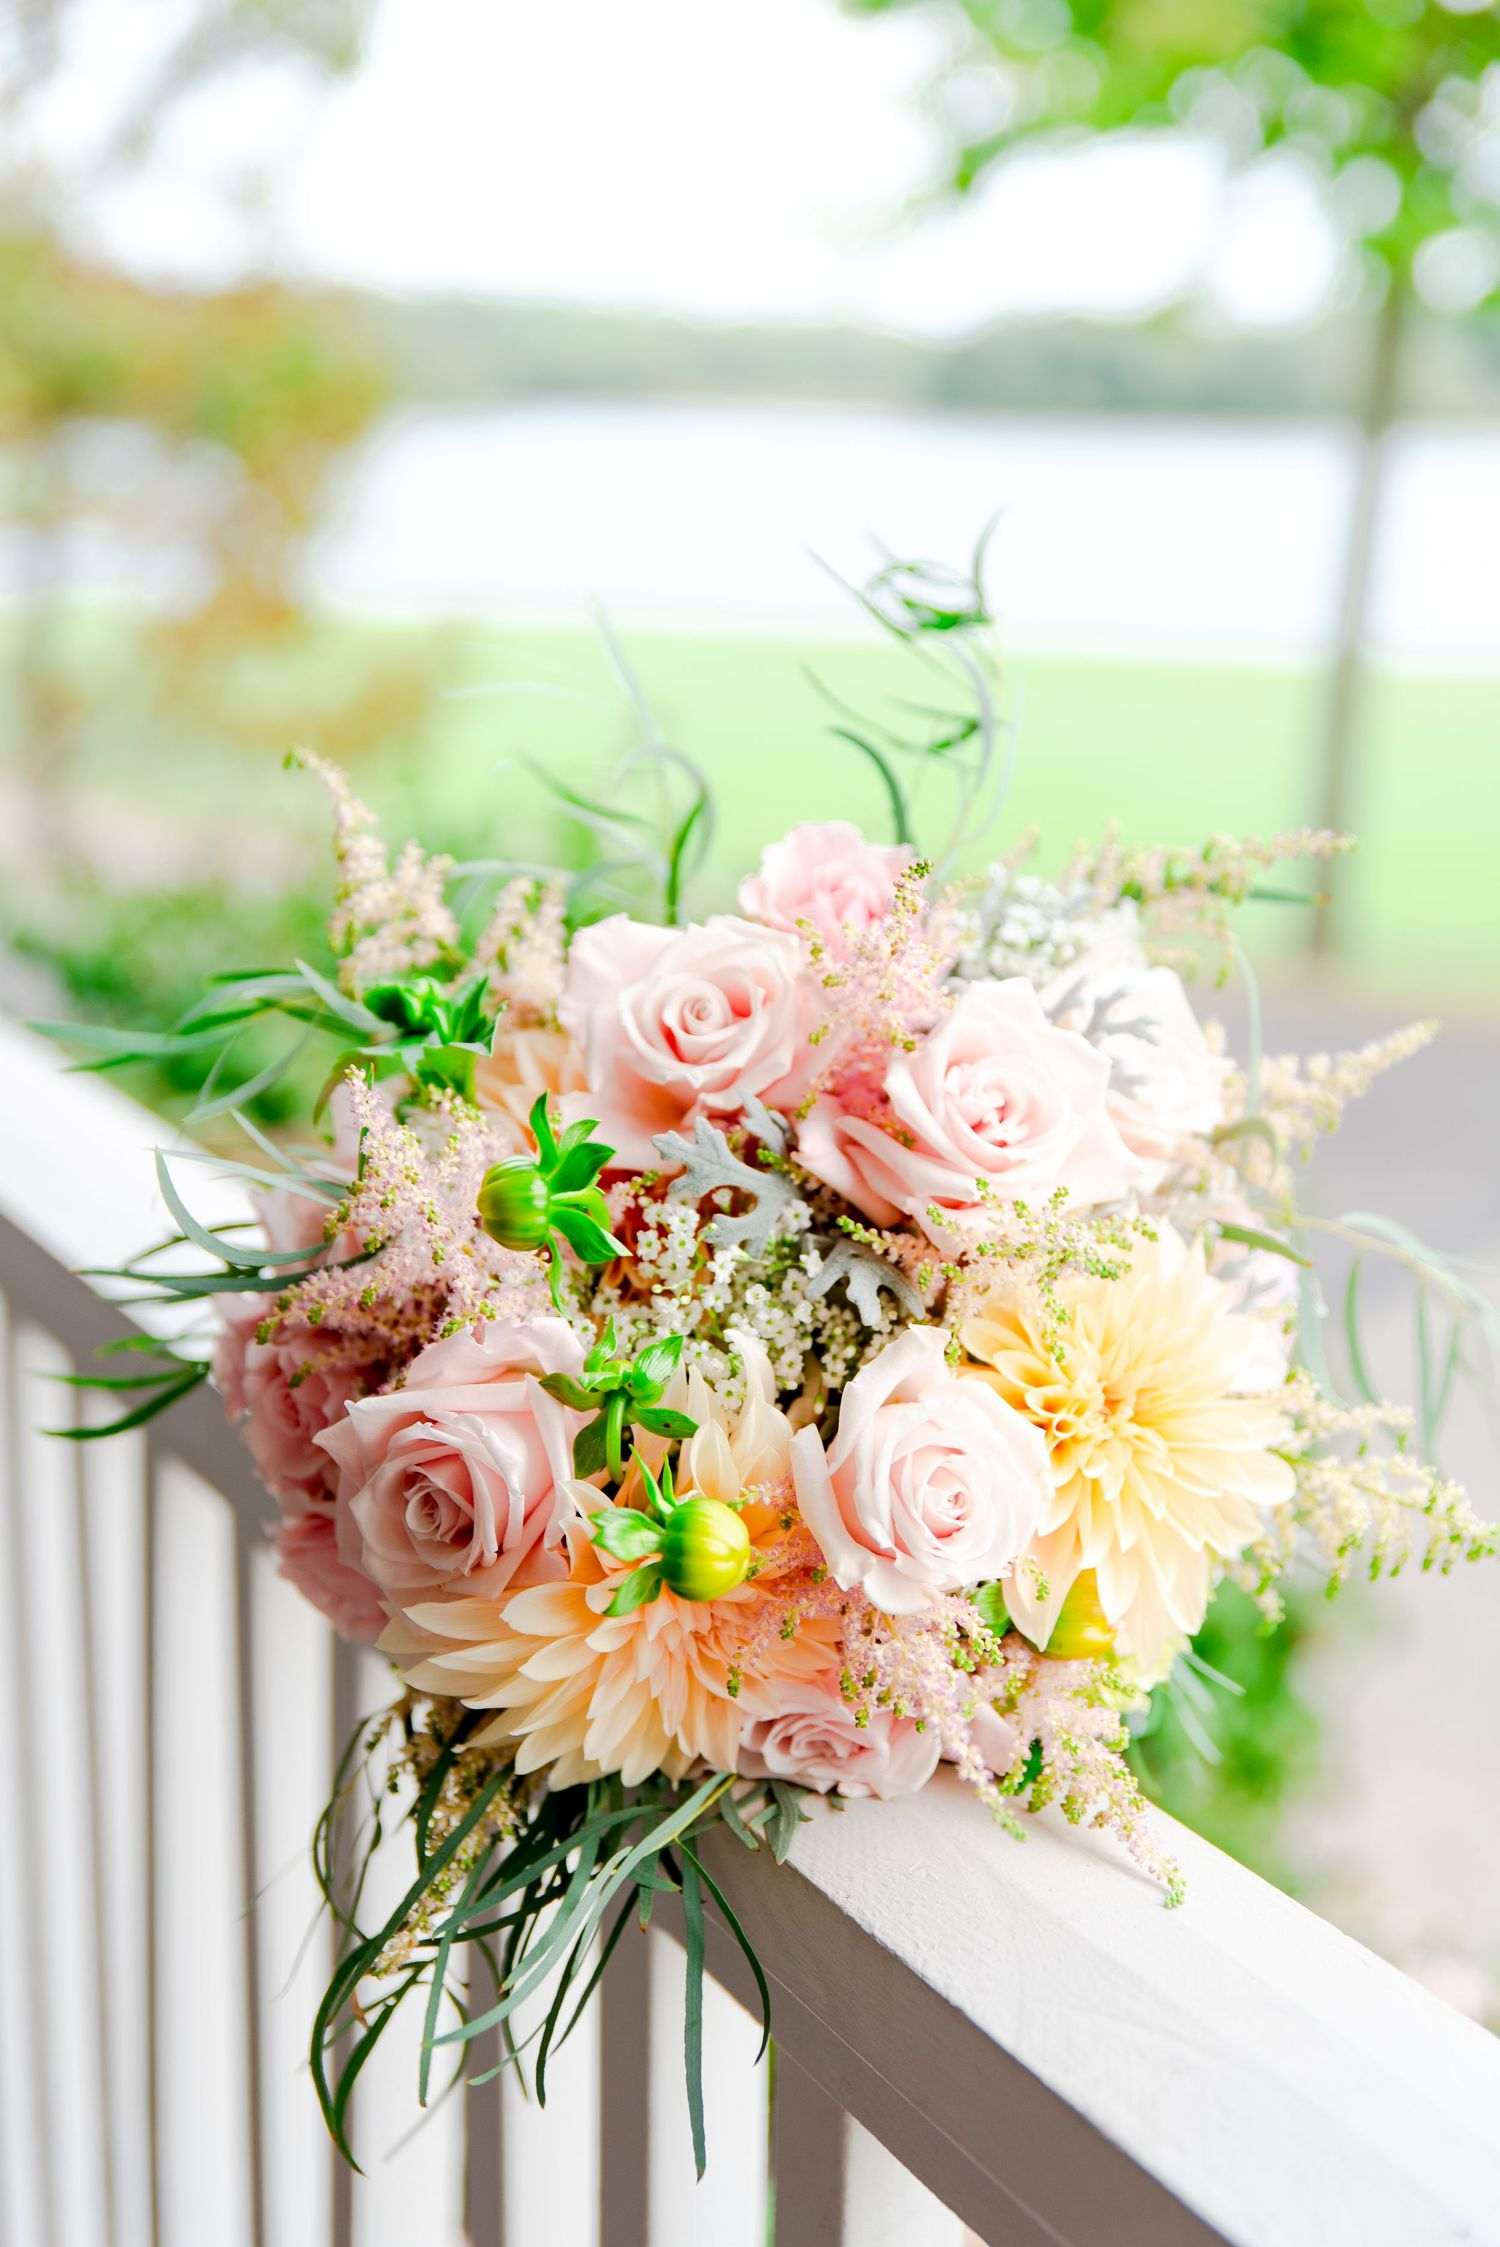 pastel spring wedding bouquet with pink roses and yellow dahlias, plus lamb's ear and pops of neon green